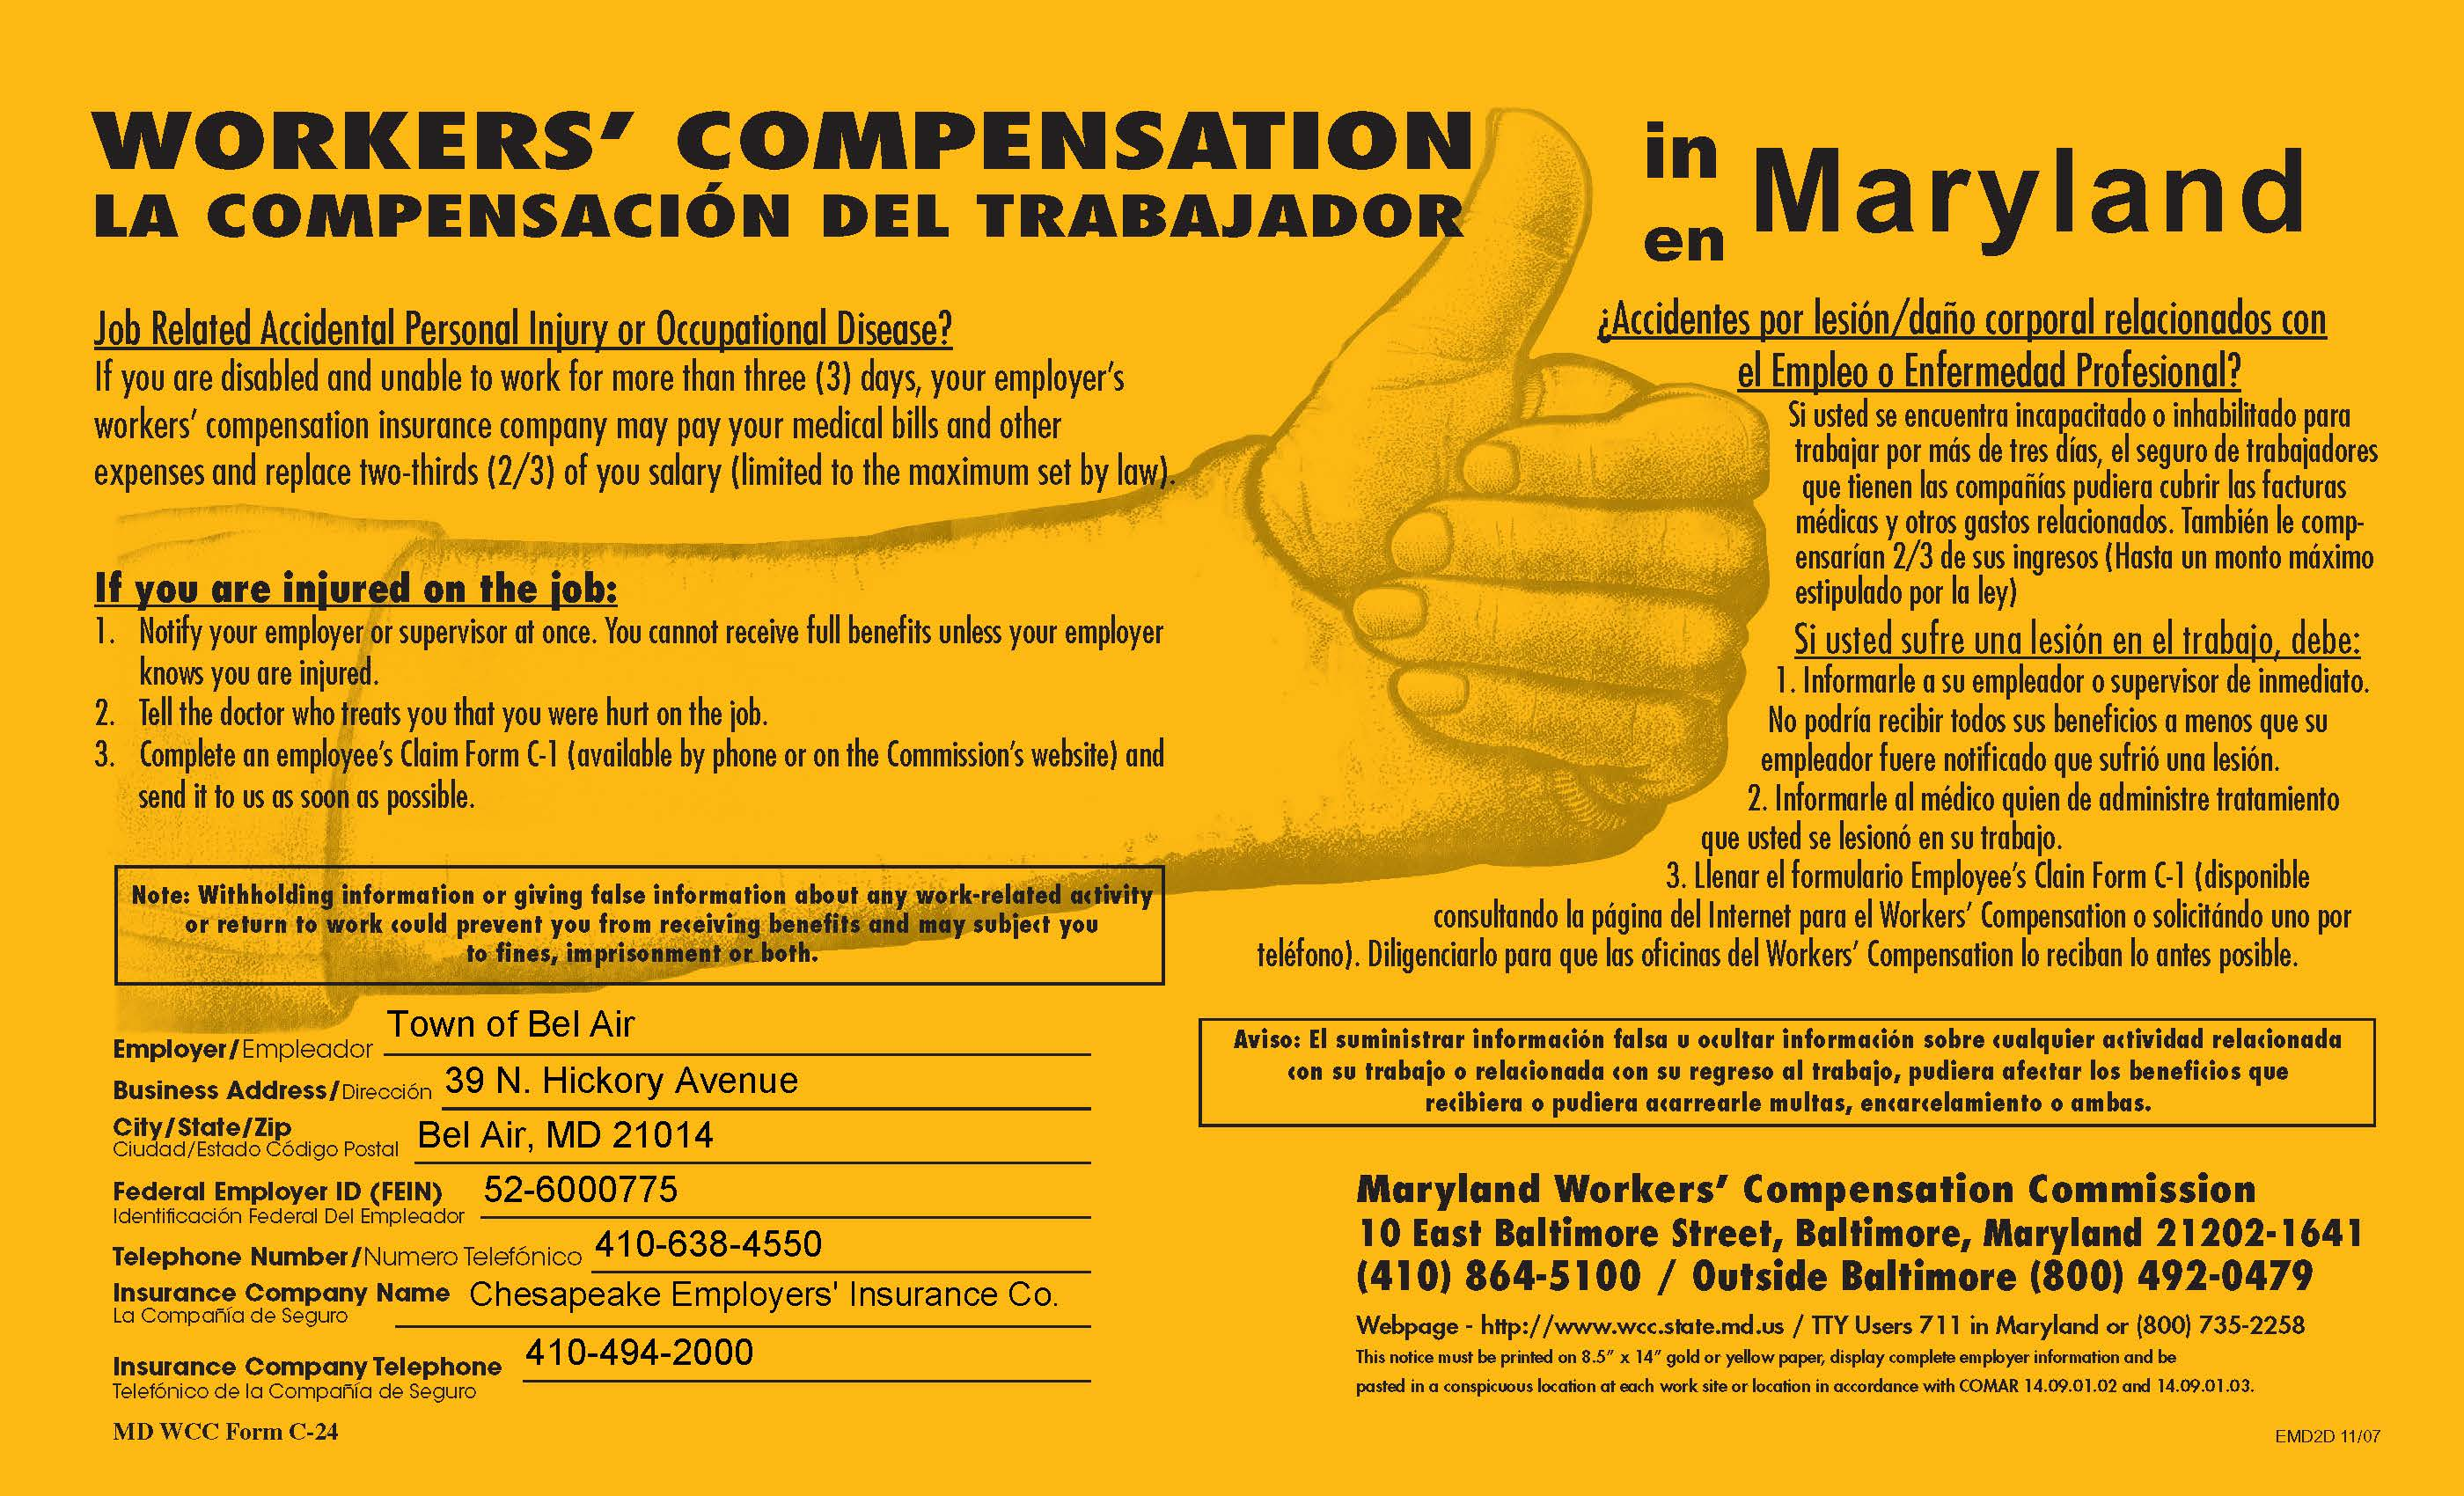 Workers' Compensation in Maryland Poster